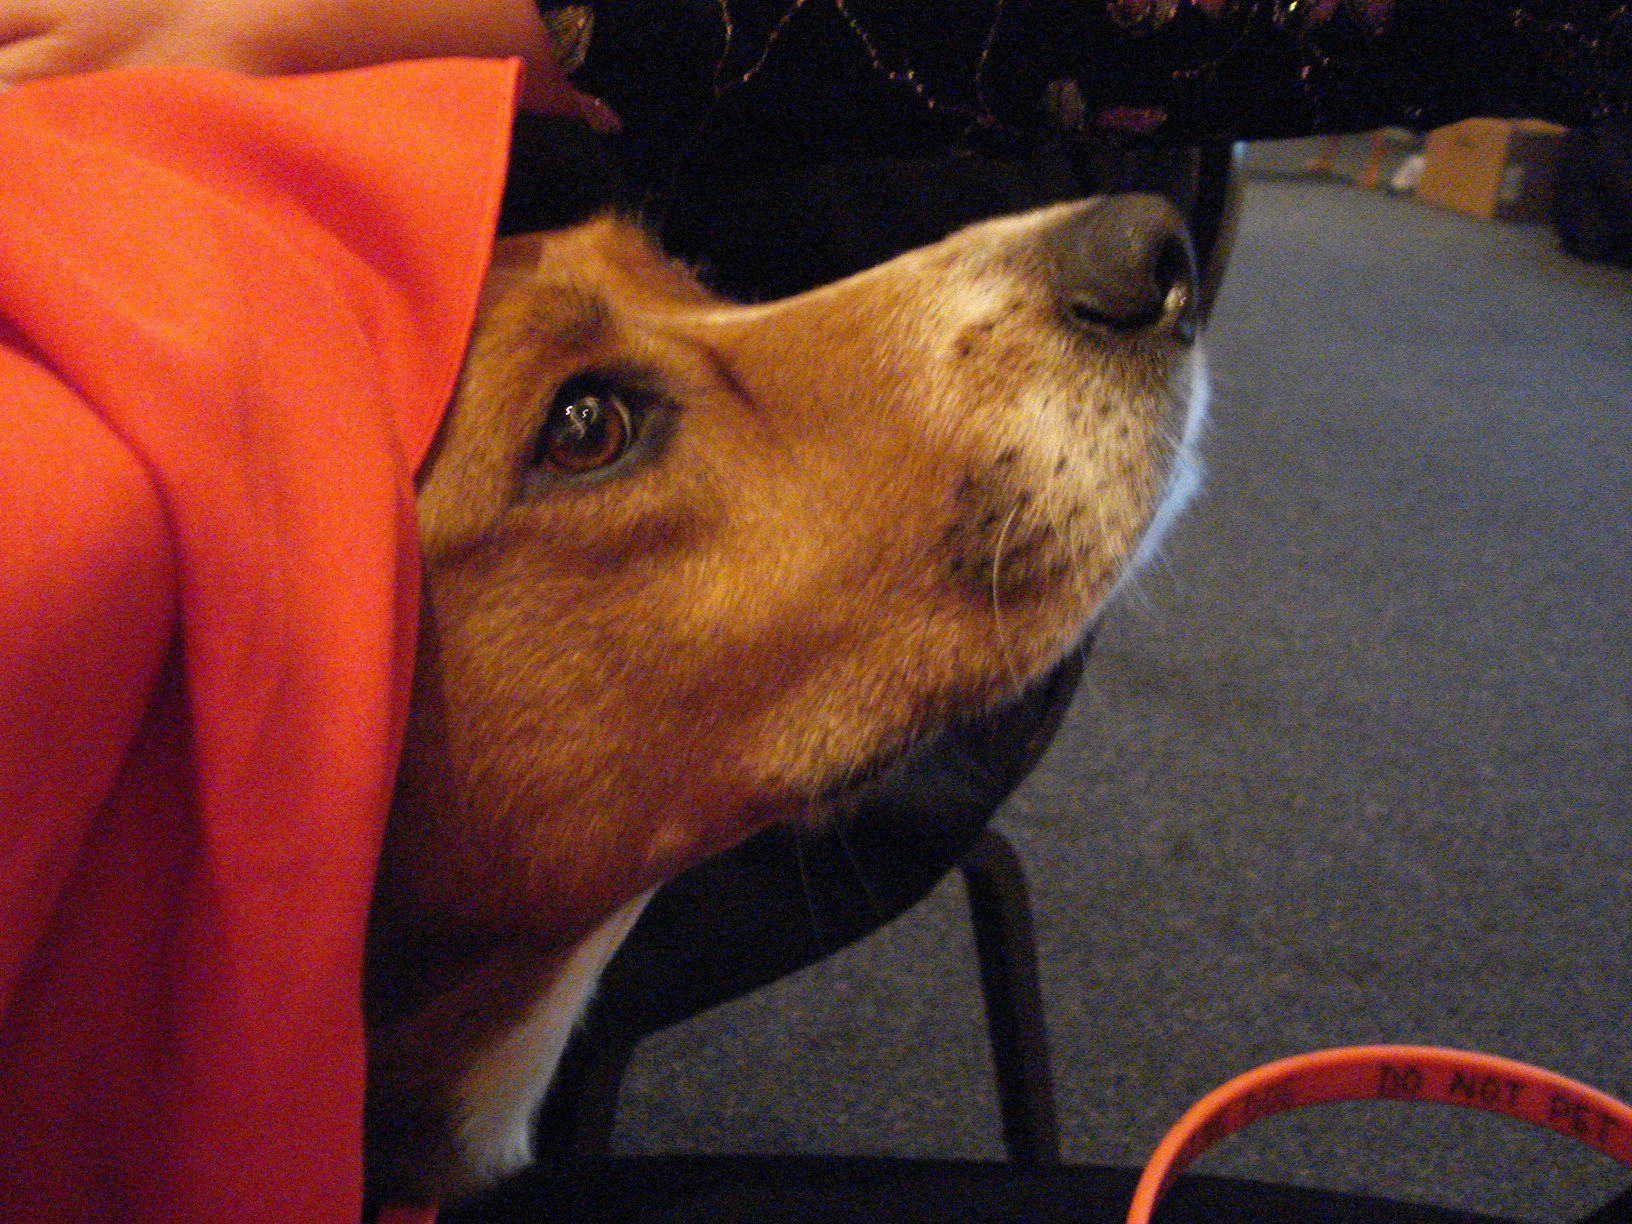 It's hard to wait under a table for 2 hours with other dogs when there is a long tablecloth!